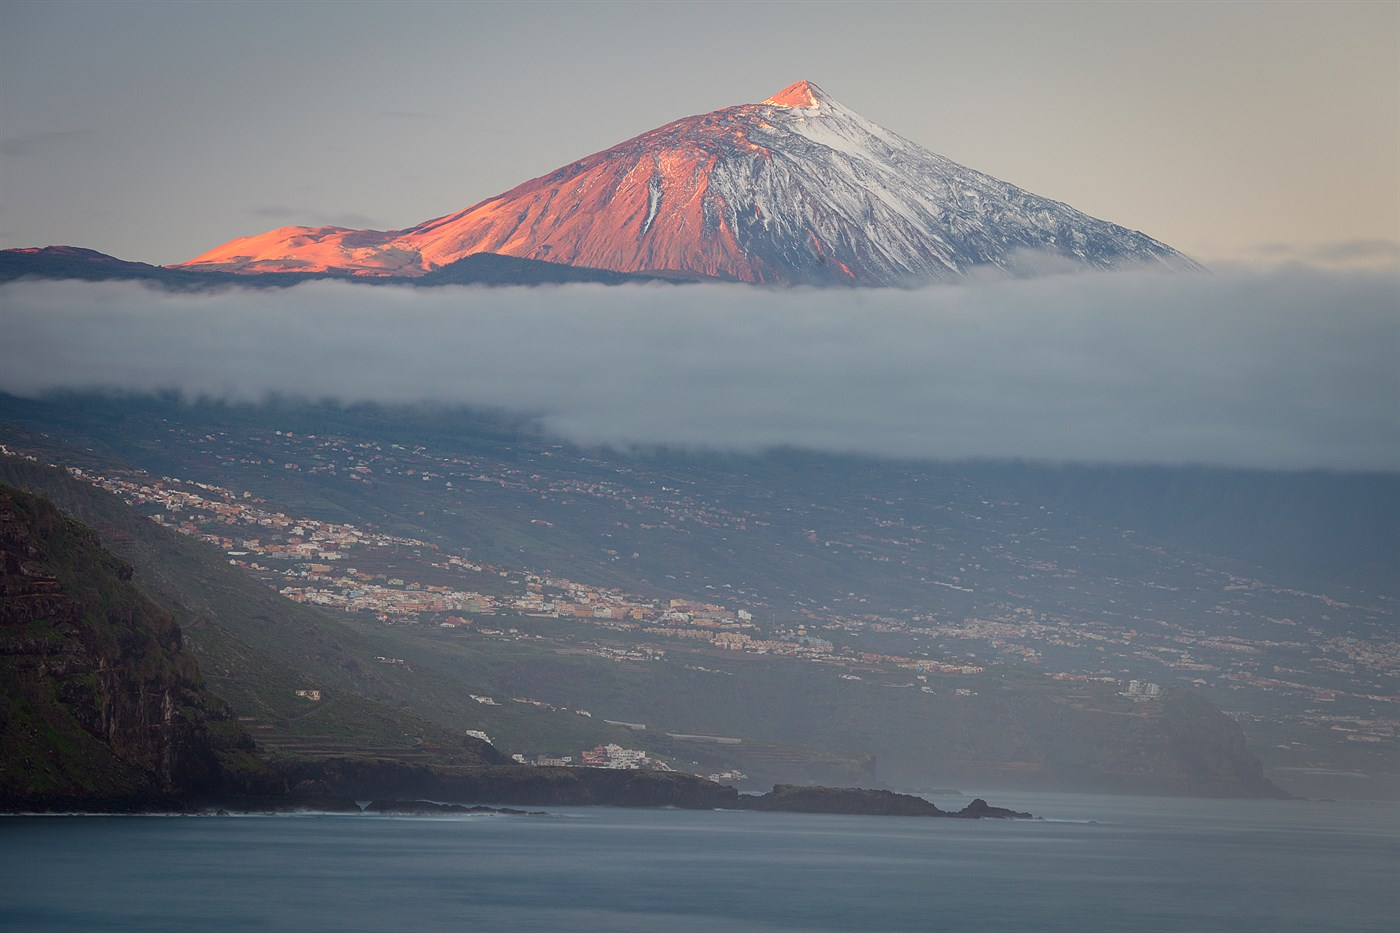 Waking Teide, photo